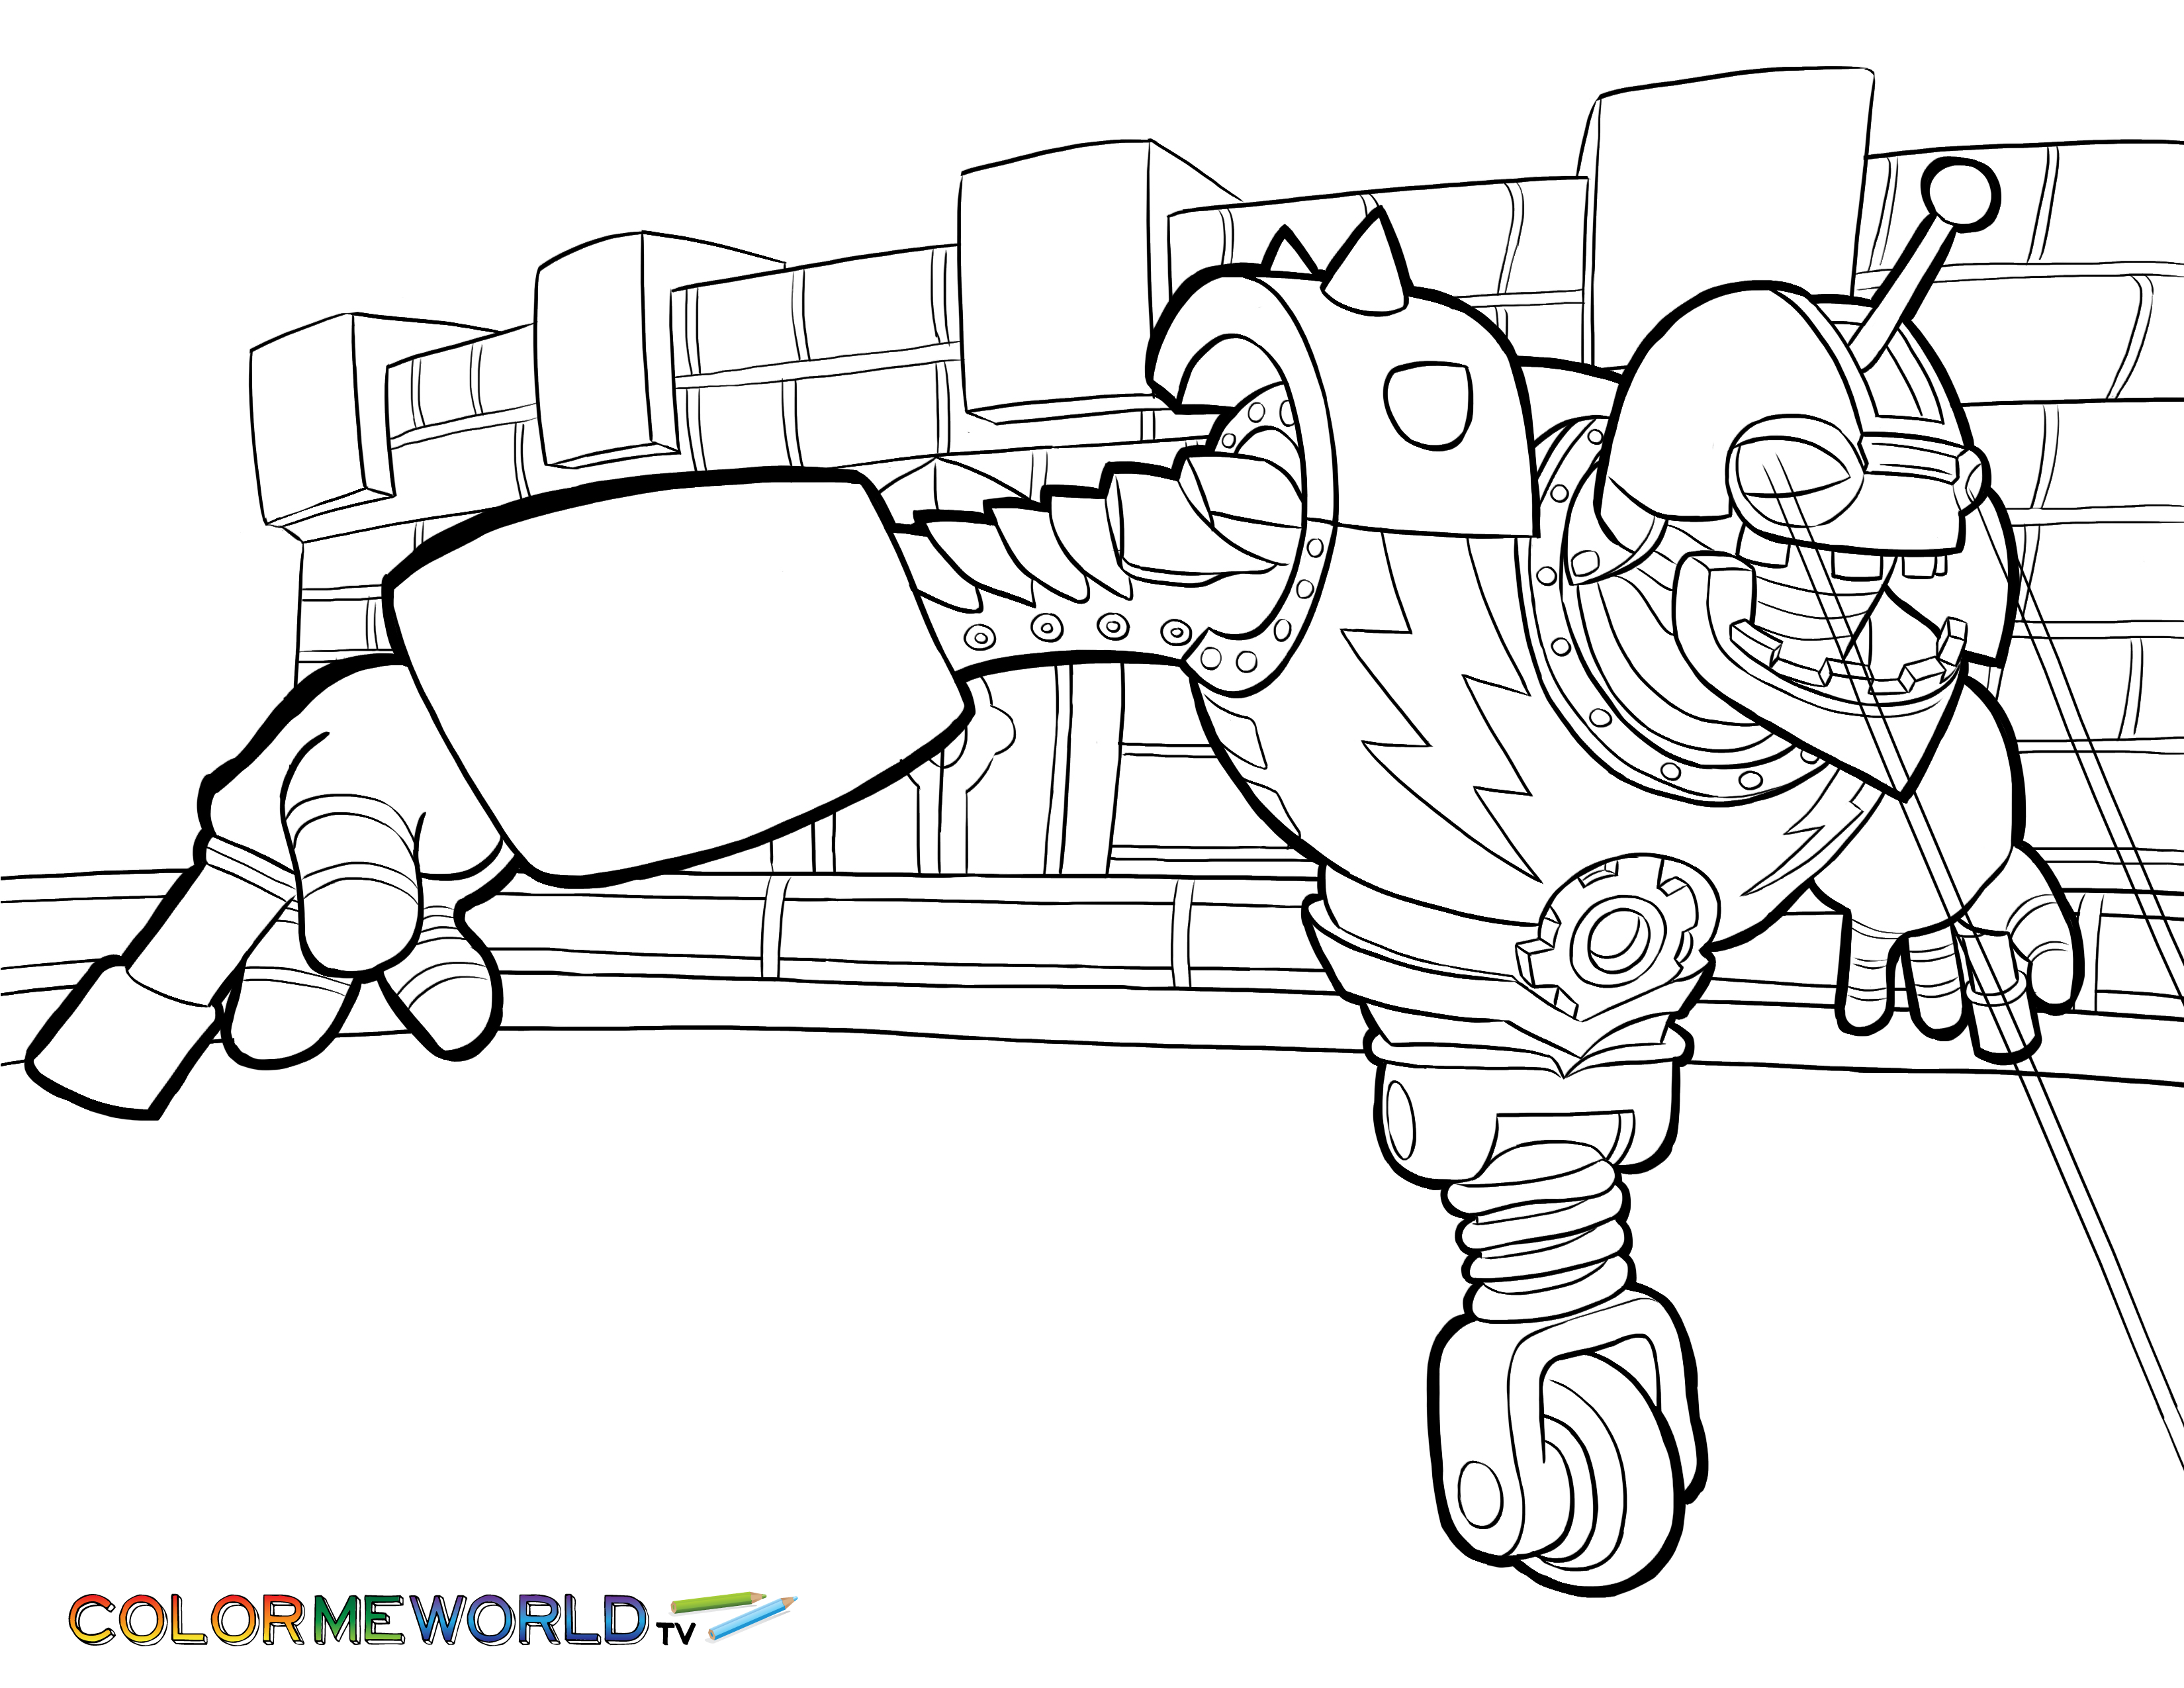 bouncer coloring page - Skylanders Free Coloring Pages